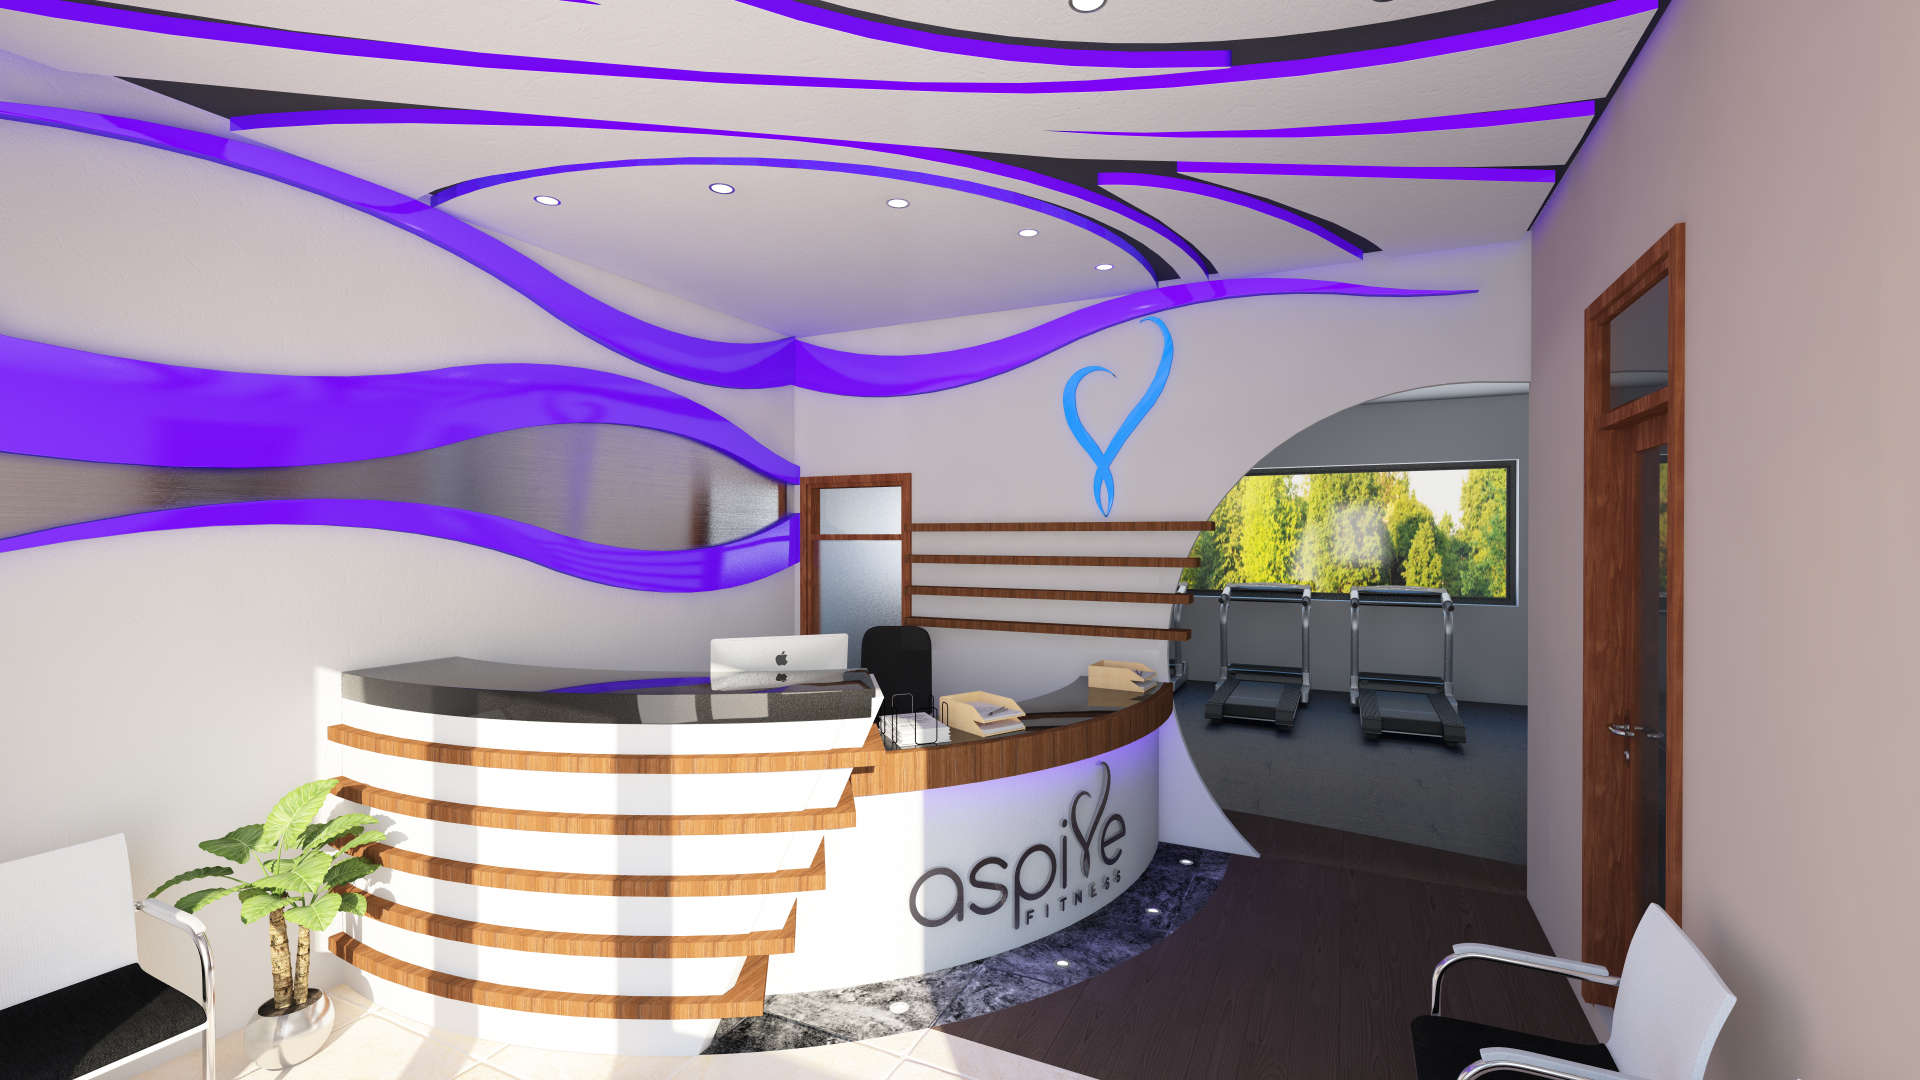 Aspire Fitness Uses Gym Management Software to Bring Fitness to Kenya